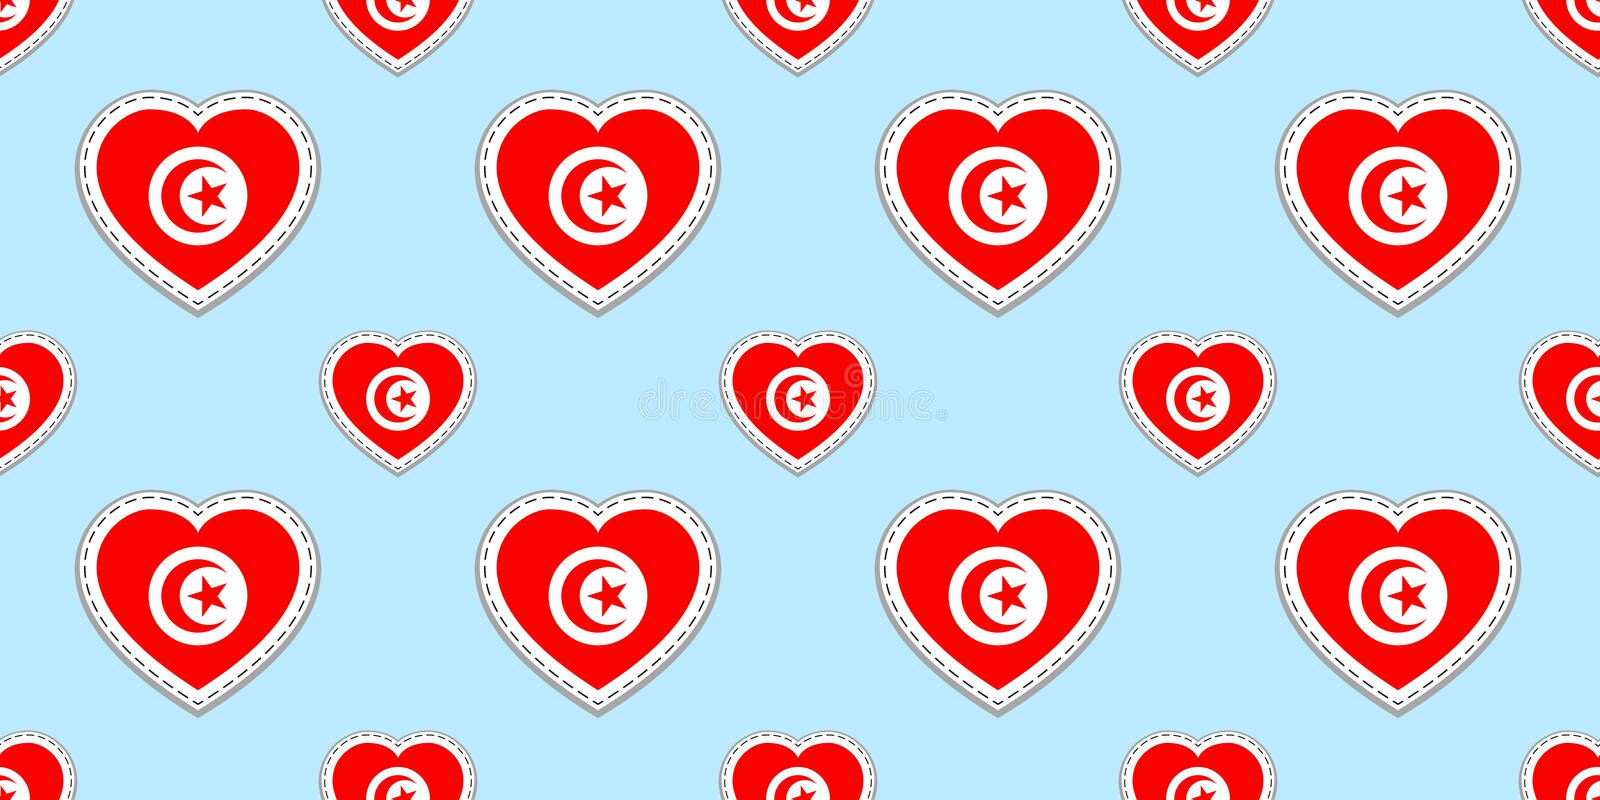 Tunisia background. Tunisian flag seamless pattern. Vector stikers. Love hearts symbols. Good choice for sports pages, travel, sch stock illustration